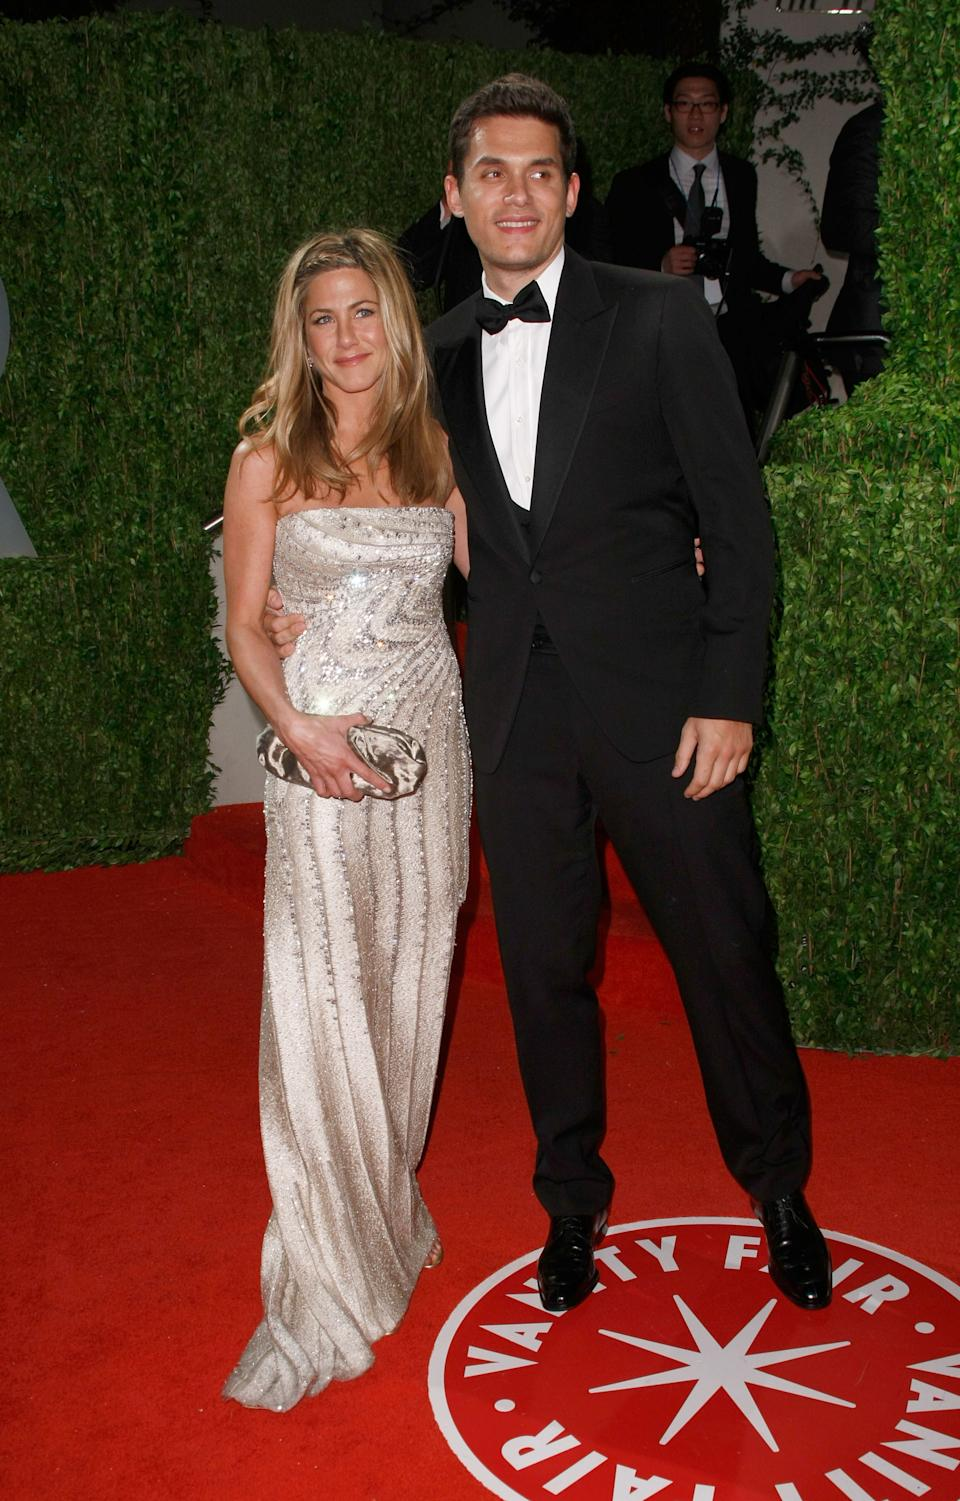 Aniston opted for a silver Valentino gown for her first red-carpet appearance with then-boyfriend John Mayer at the 2009 Vanity Fair Oscar Party. (Image via Getty Images)